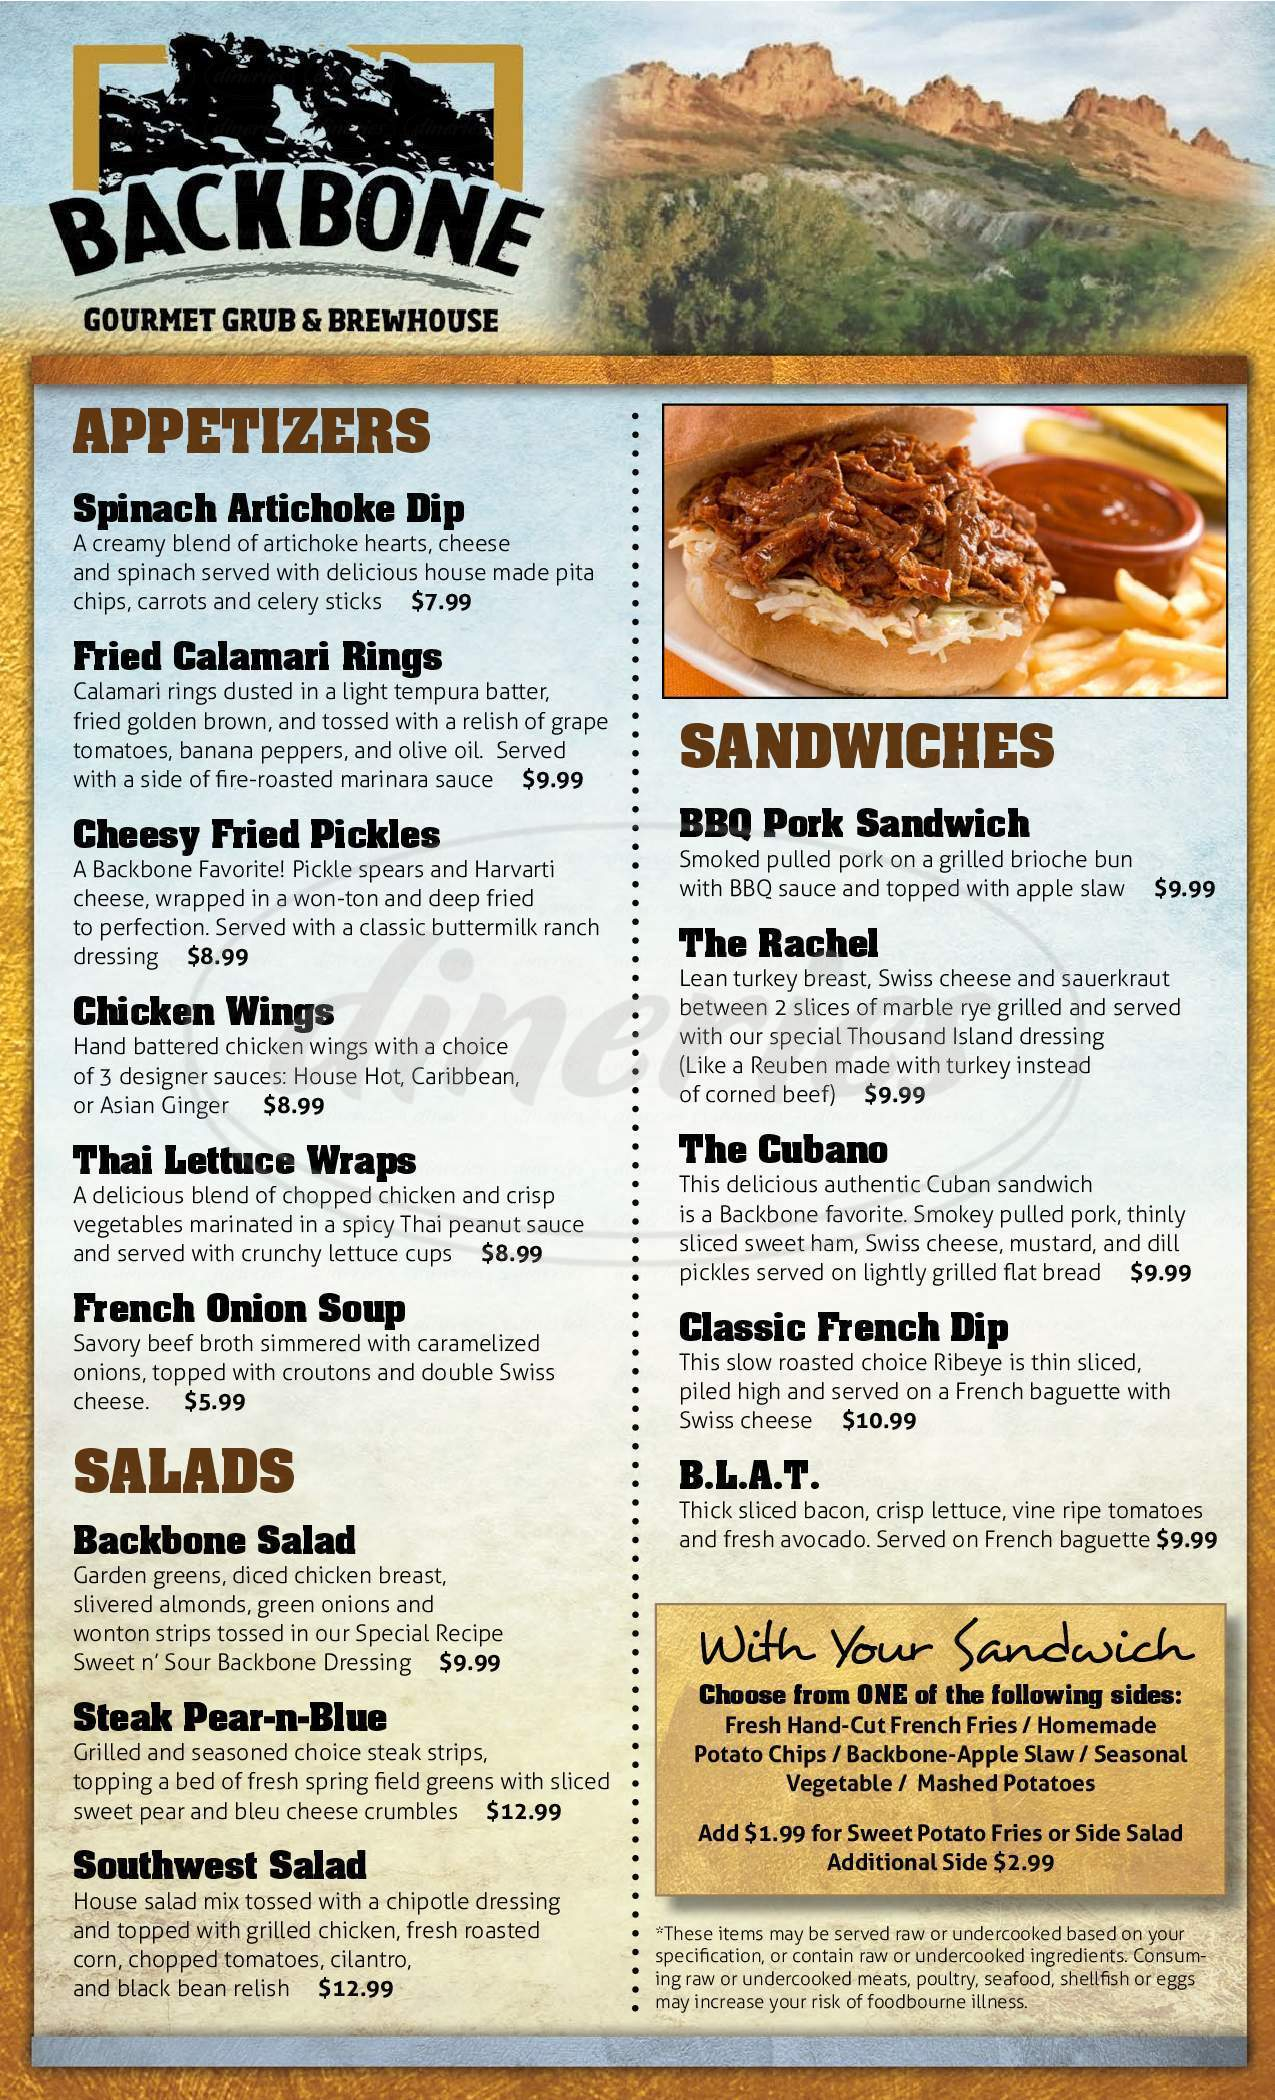 menu for Backbone Gourmet Grub & Brewhouse